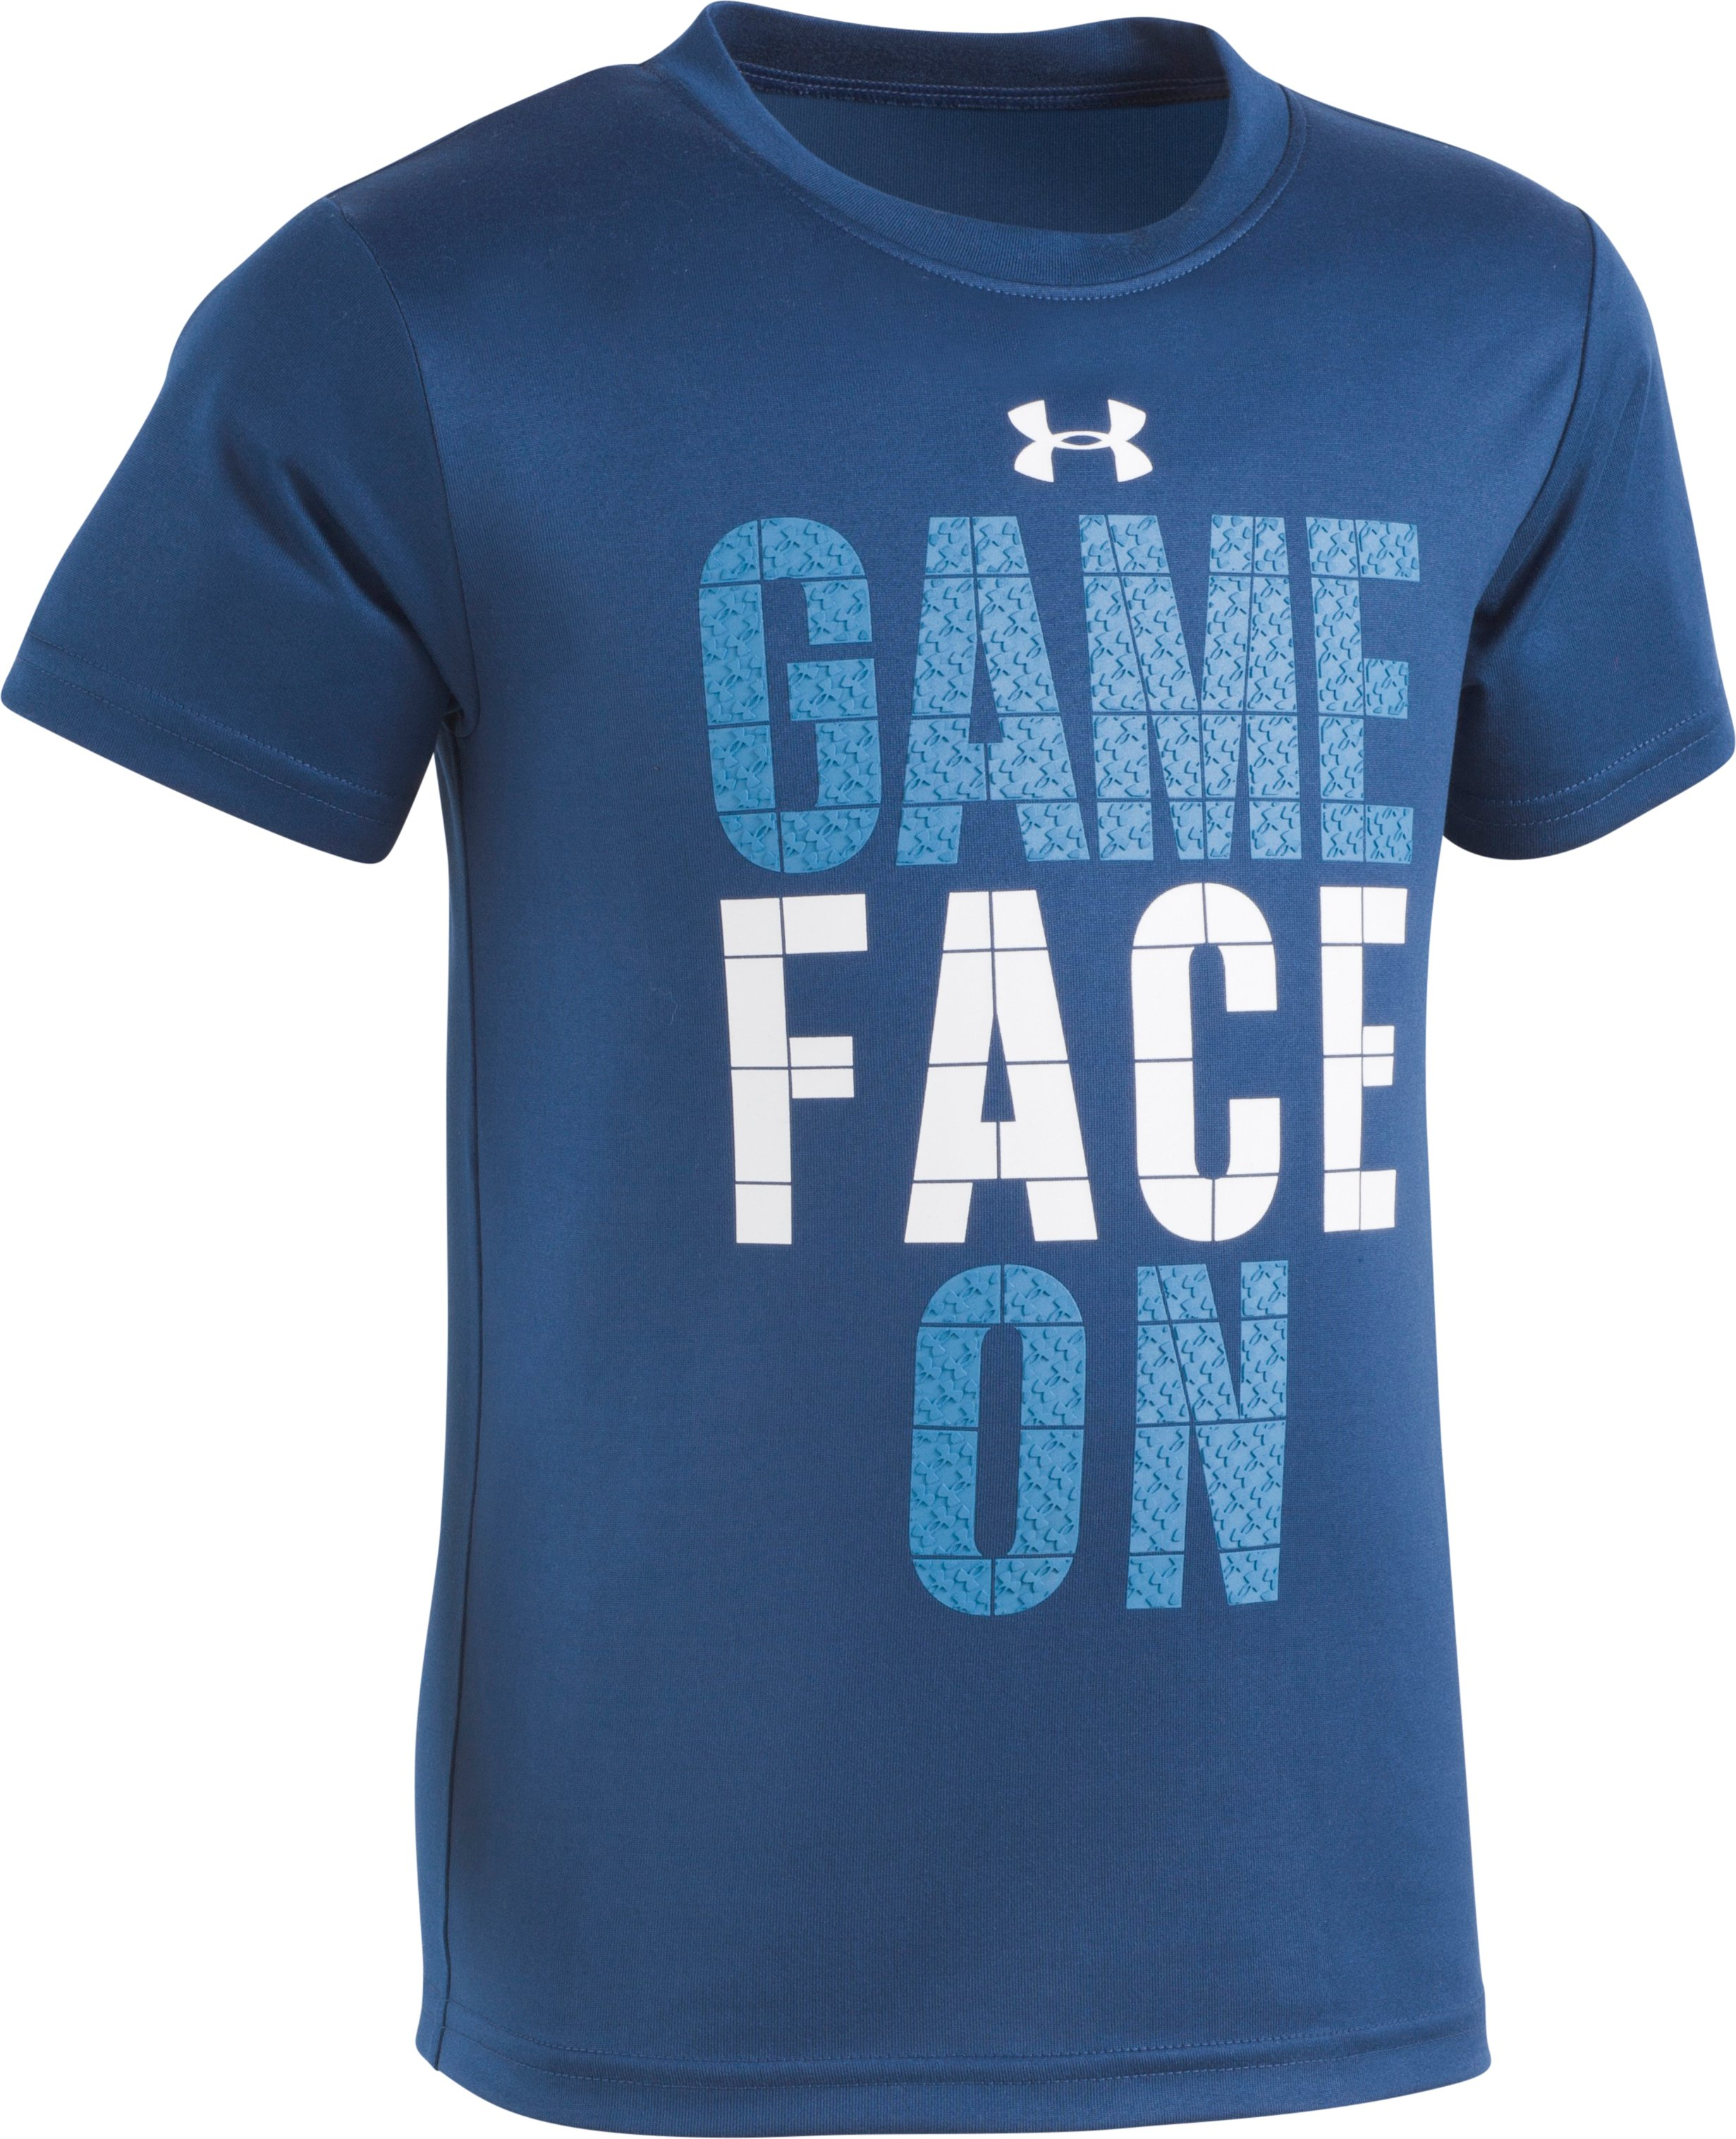 Boys' Pre-School UA Game Face On Short Sleeve Shirt, BLACKOUT NAVY, zoomed image